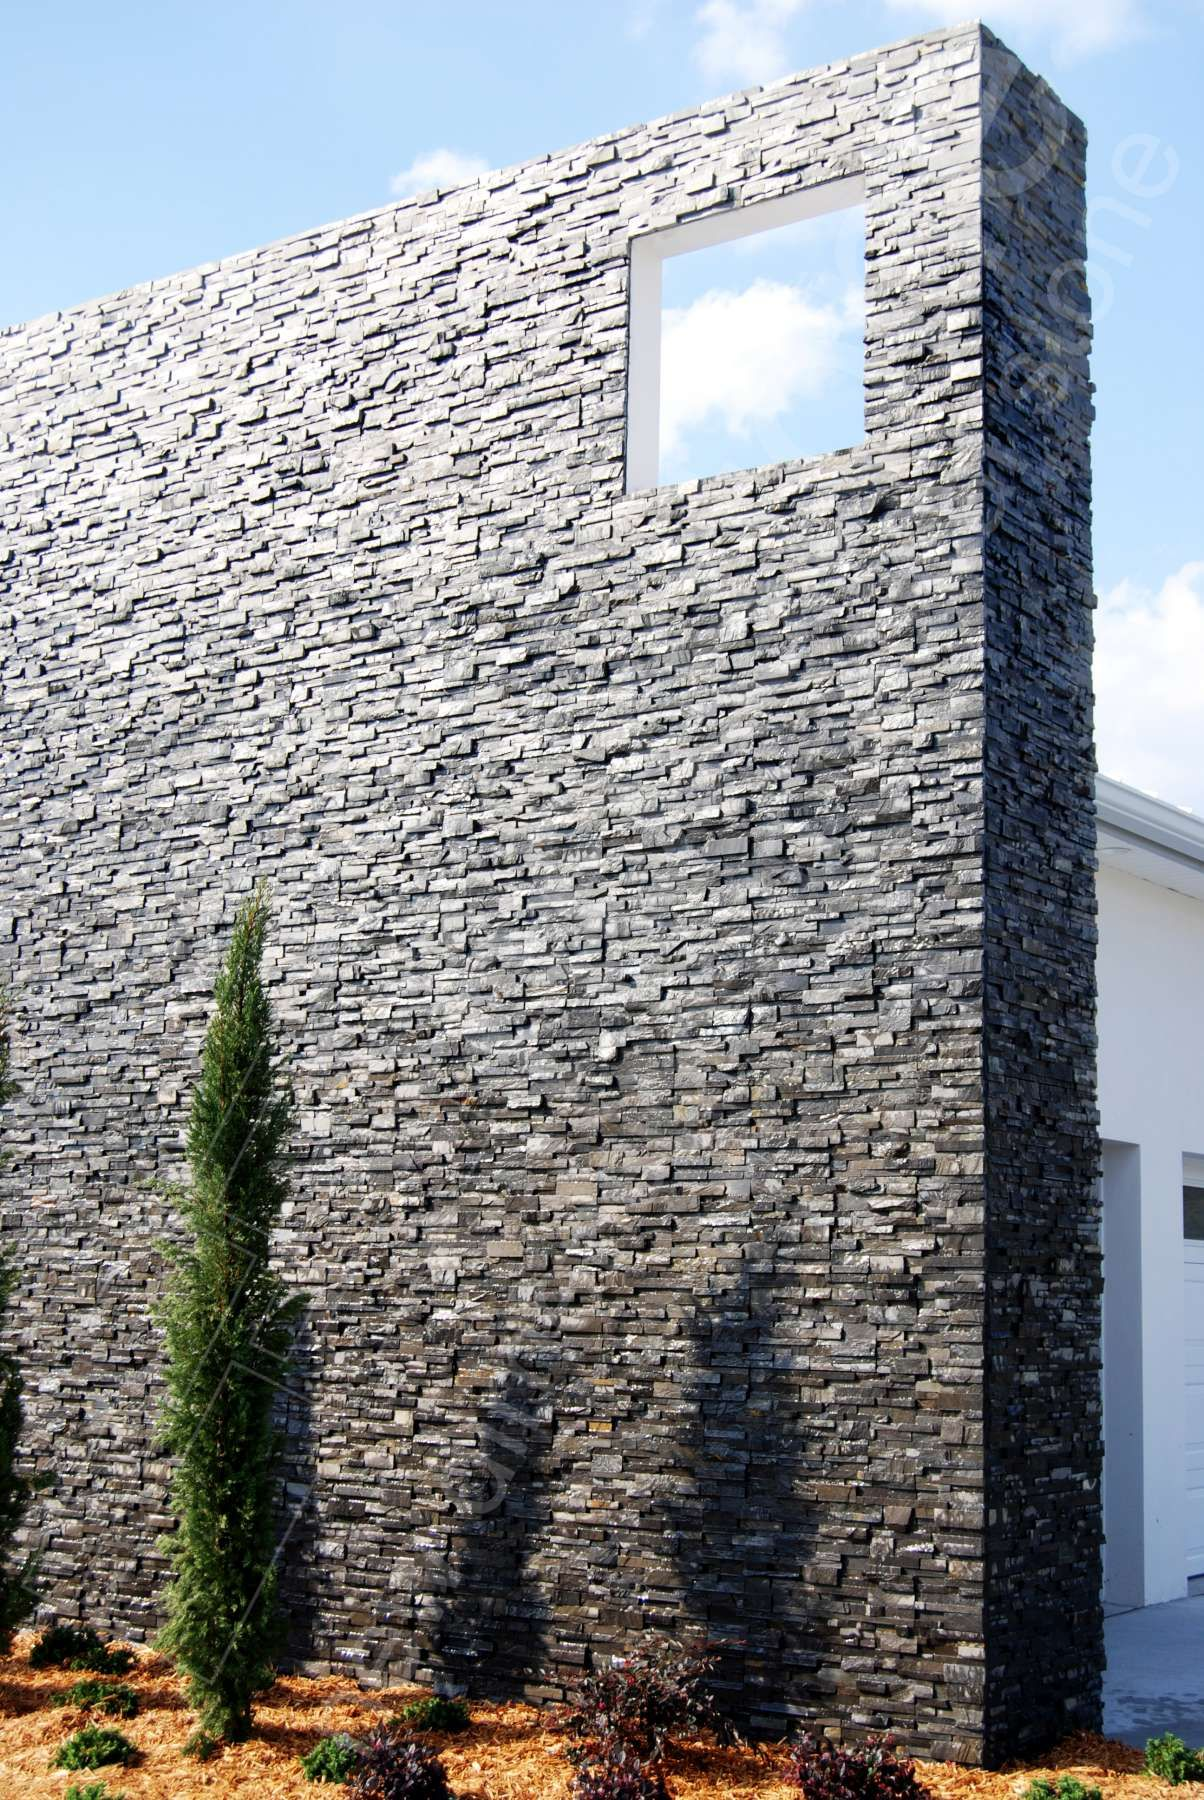 Charcoal Remarkably Simple And Cost Effective Norstone Natural Stone Wall Tiles Offer High End Stone Cladding Exterior Exterior Stone Architecture Exterior